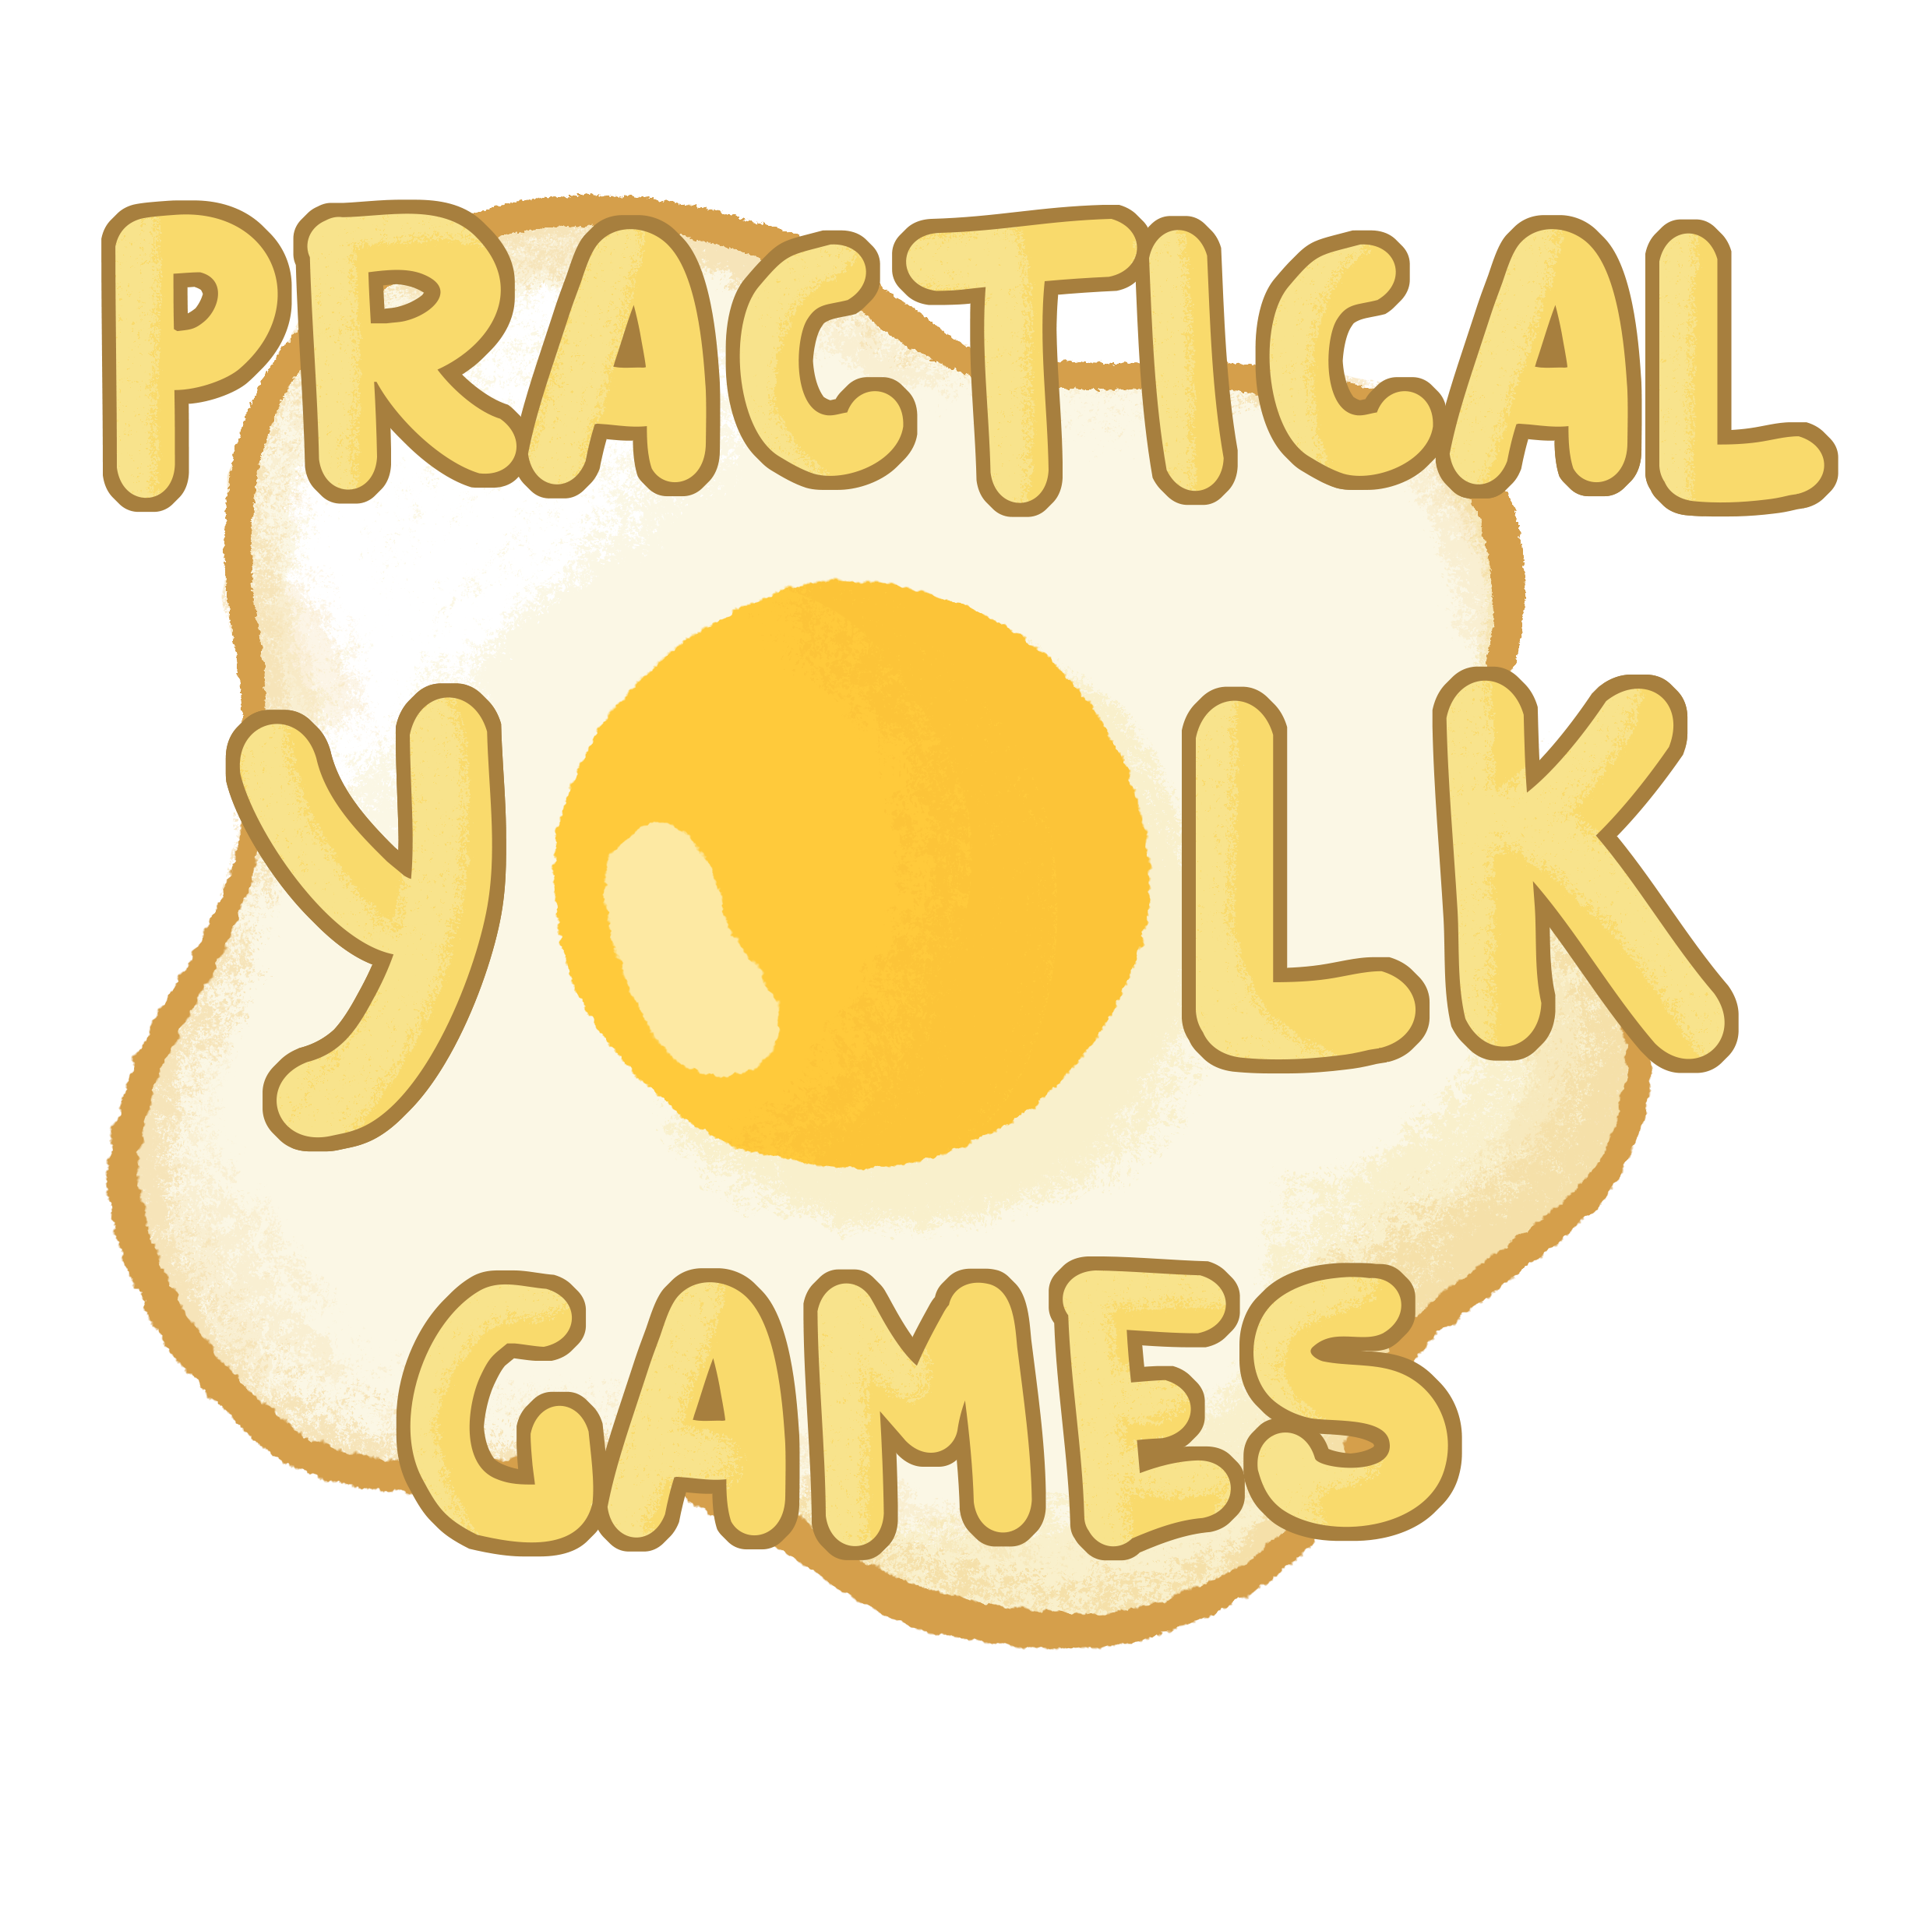 Practical Yolk Games